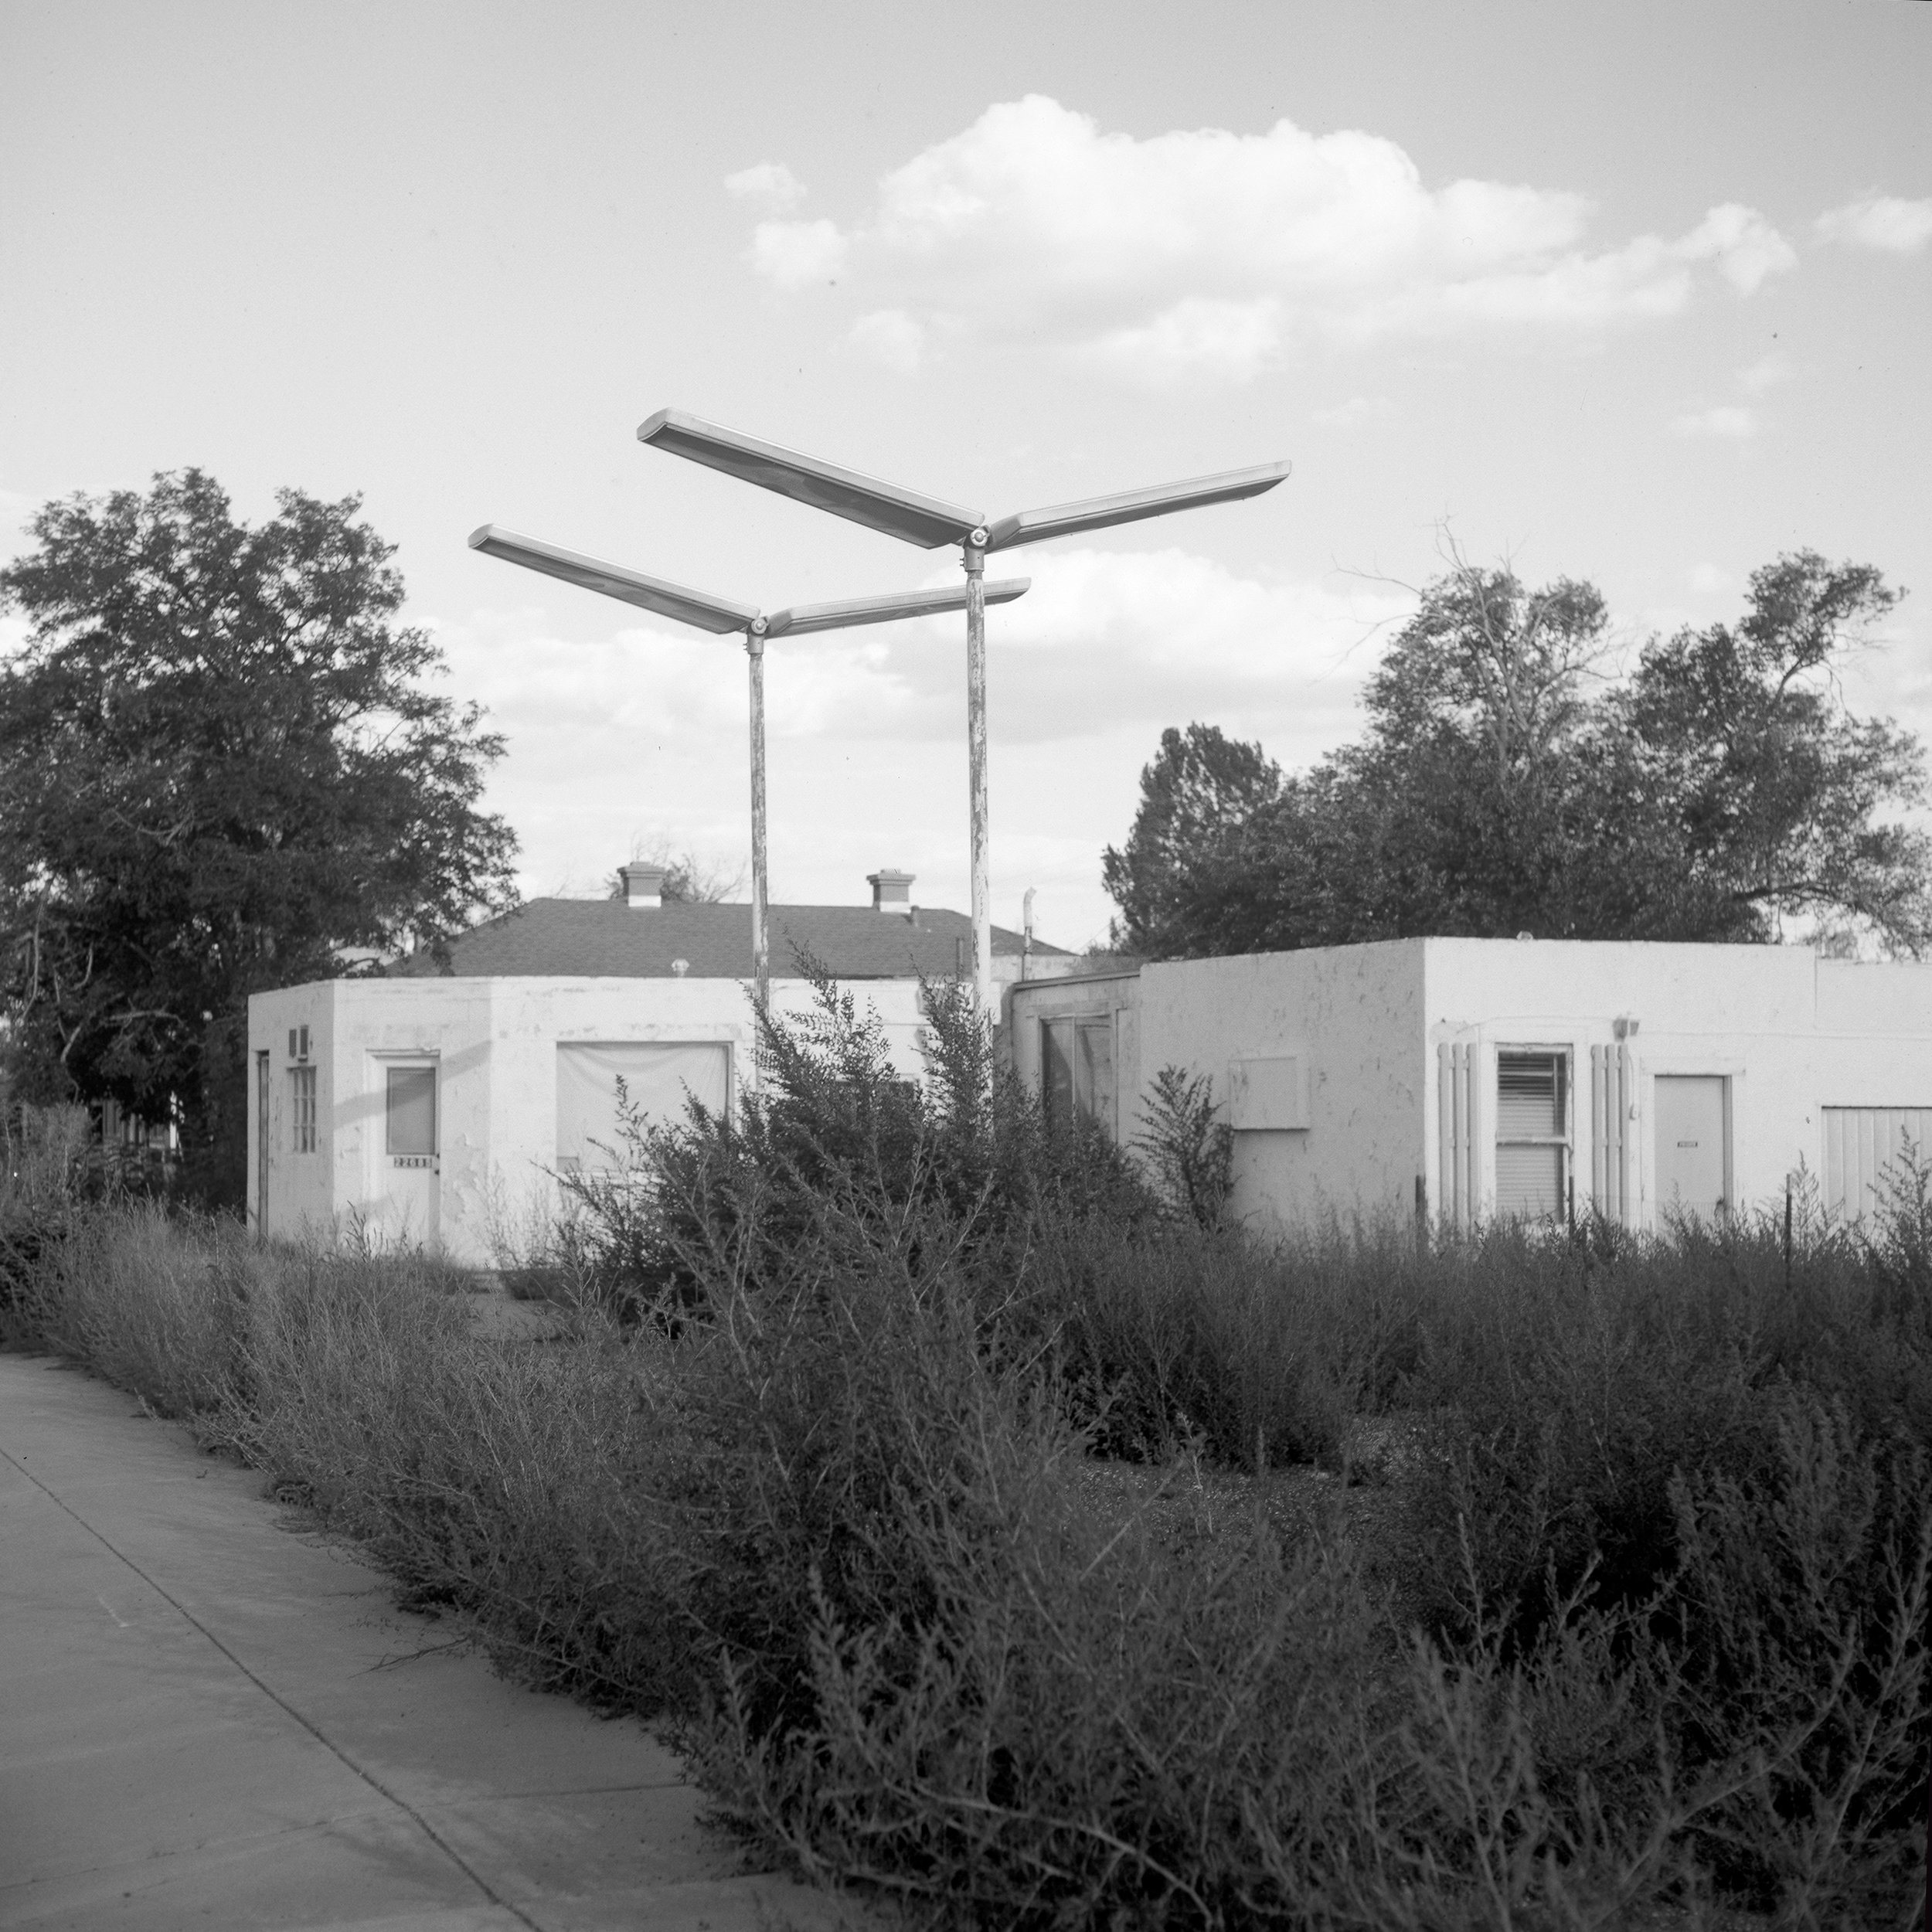 The old service station lights, Seligman, AZ, 2017 - 120 Delta 100 (6x6)